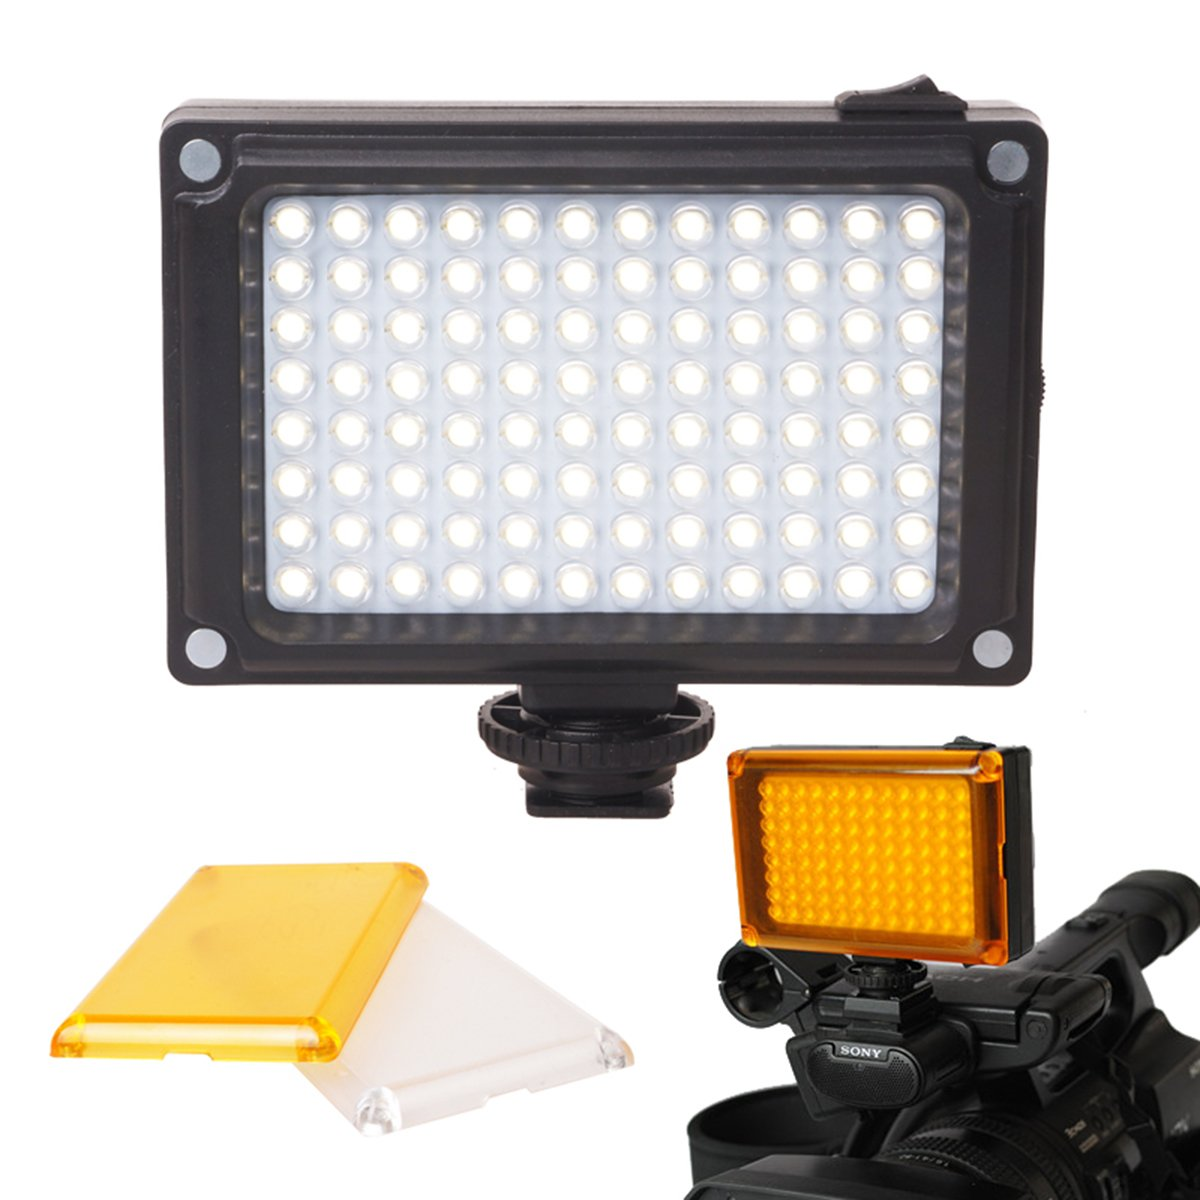 96 LED Video Light,Mini Pocket Led Lighting for Canon Nikon Camcorder DSLR Camera Smartphone Lighting Wedding Facebook Living Stream Vlogging Youtube Video